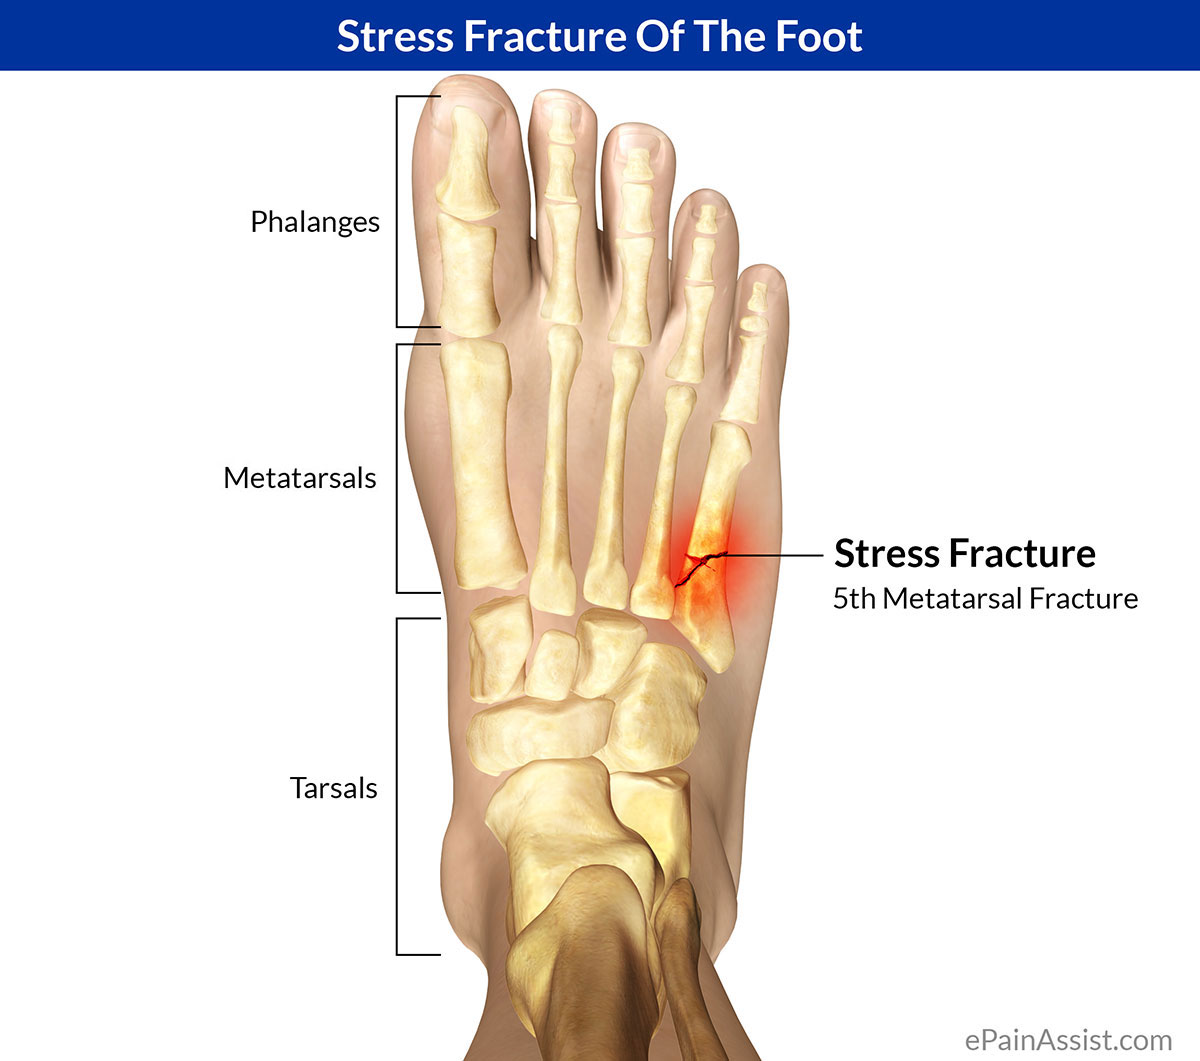 Stress Fracture of the Foot|Causes|Symptoms|Treatment